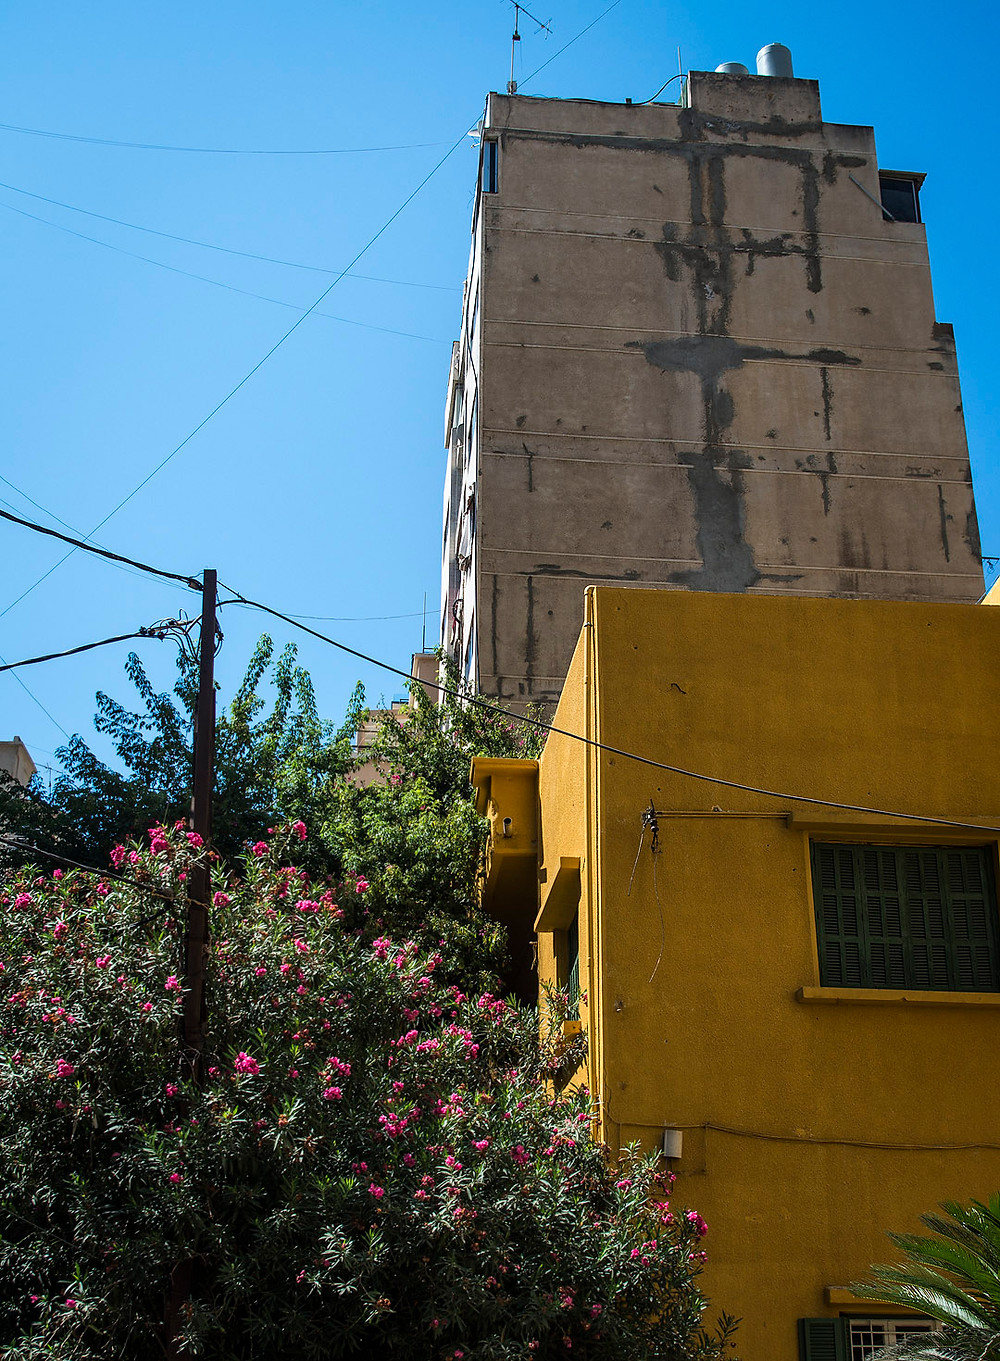 Yellow house in Hamra, Beirut